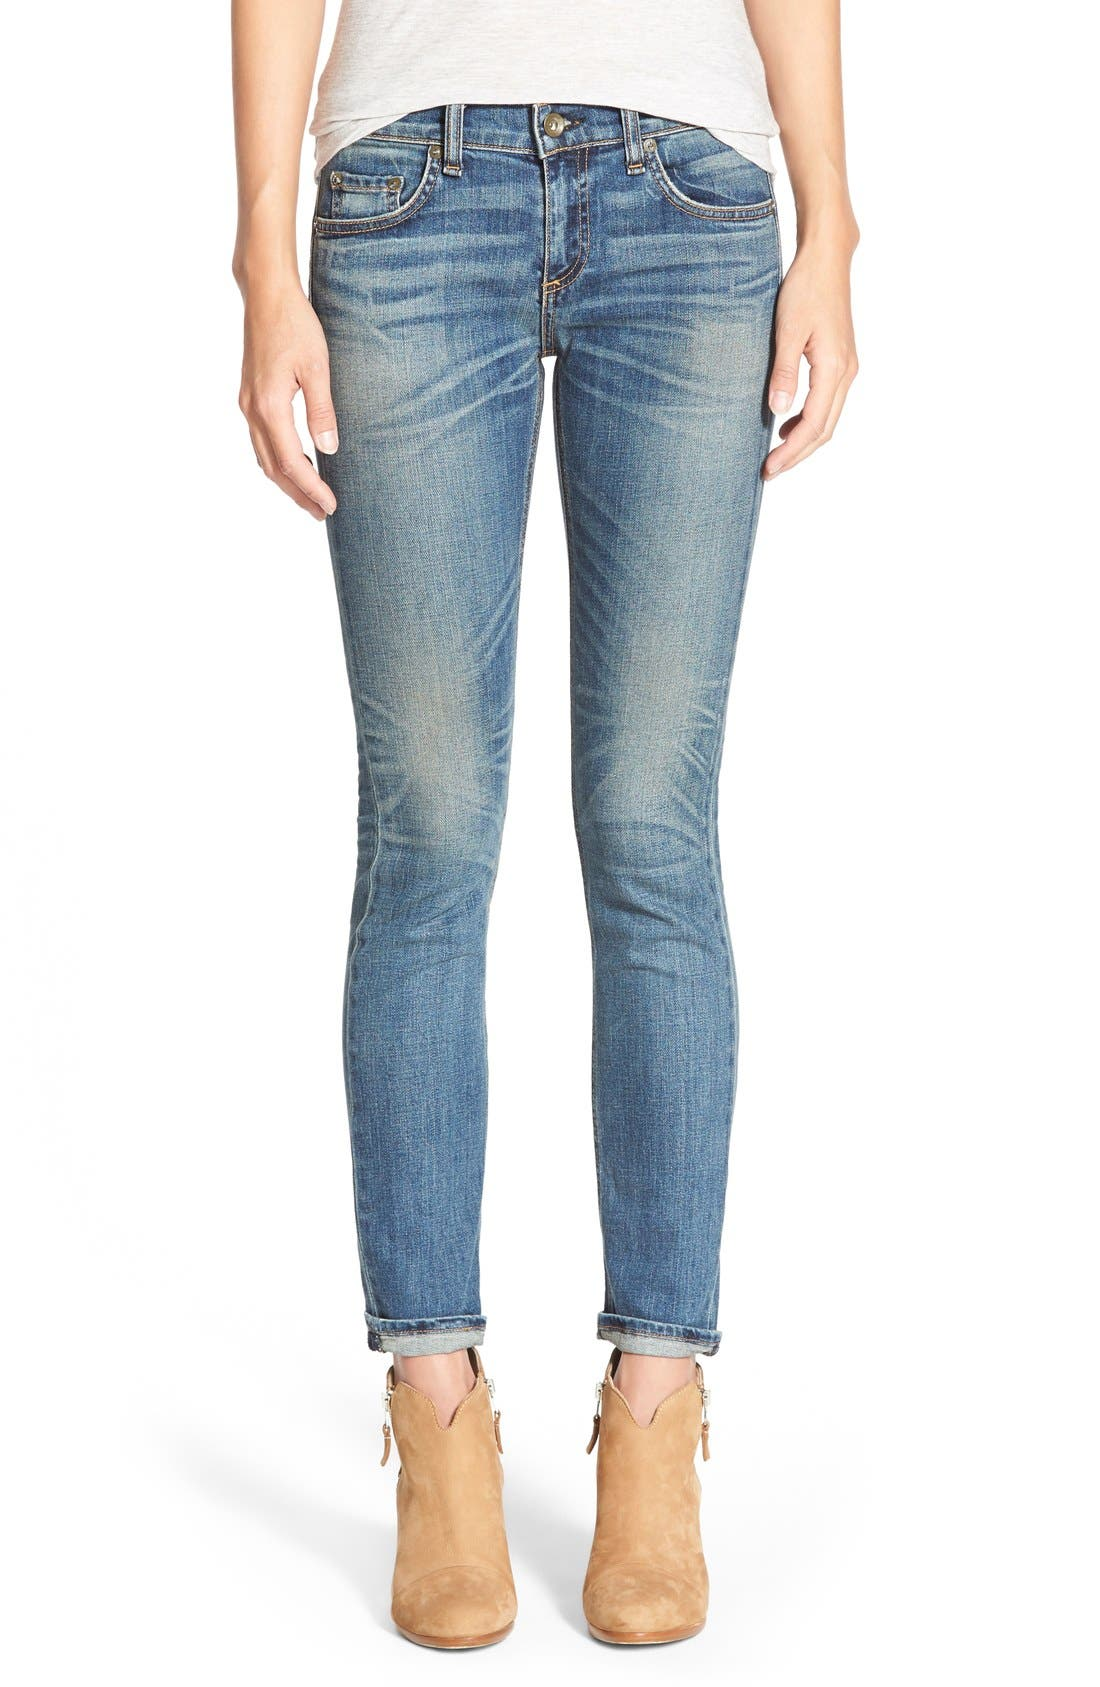 Alternate Image 1 Selected - rag & bone/JEAN 'The Dre' Slim Fit Boyfriend Jeans (Ada)